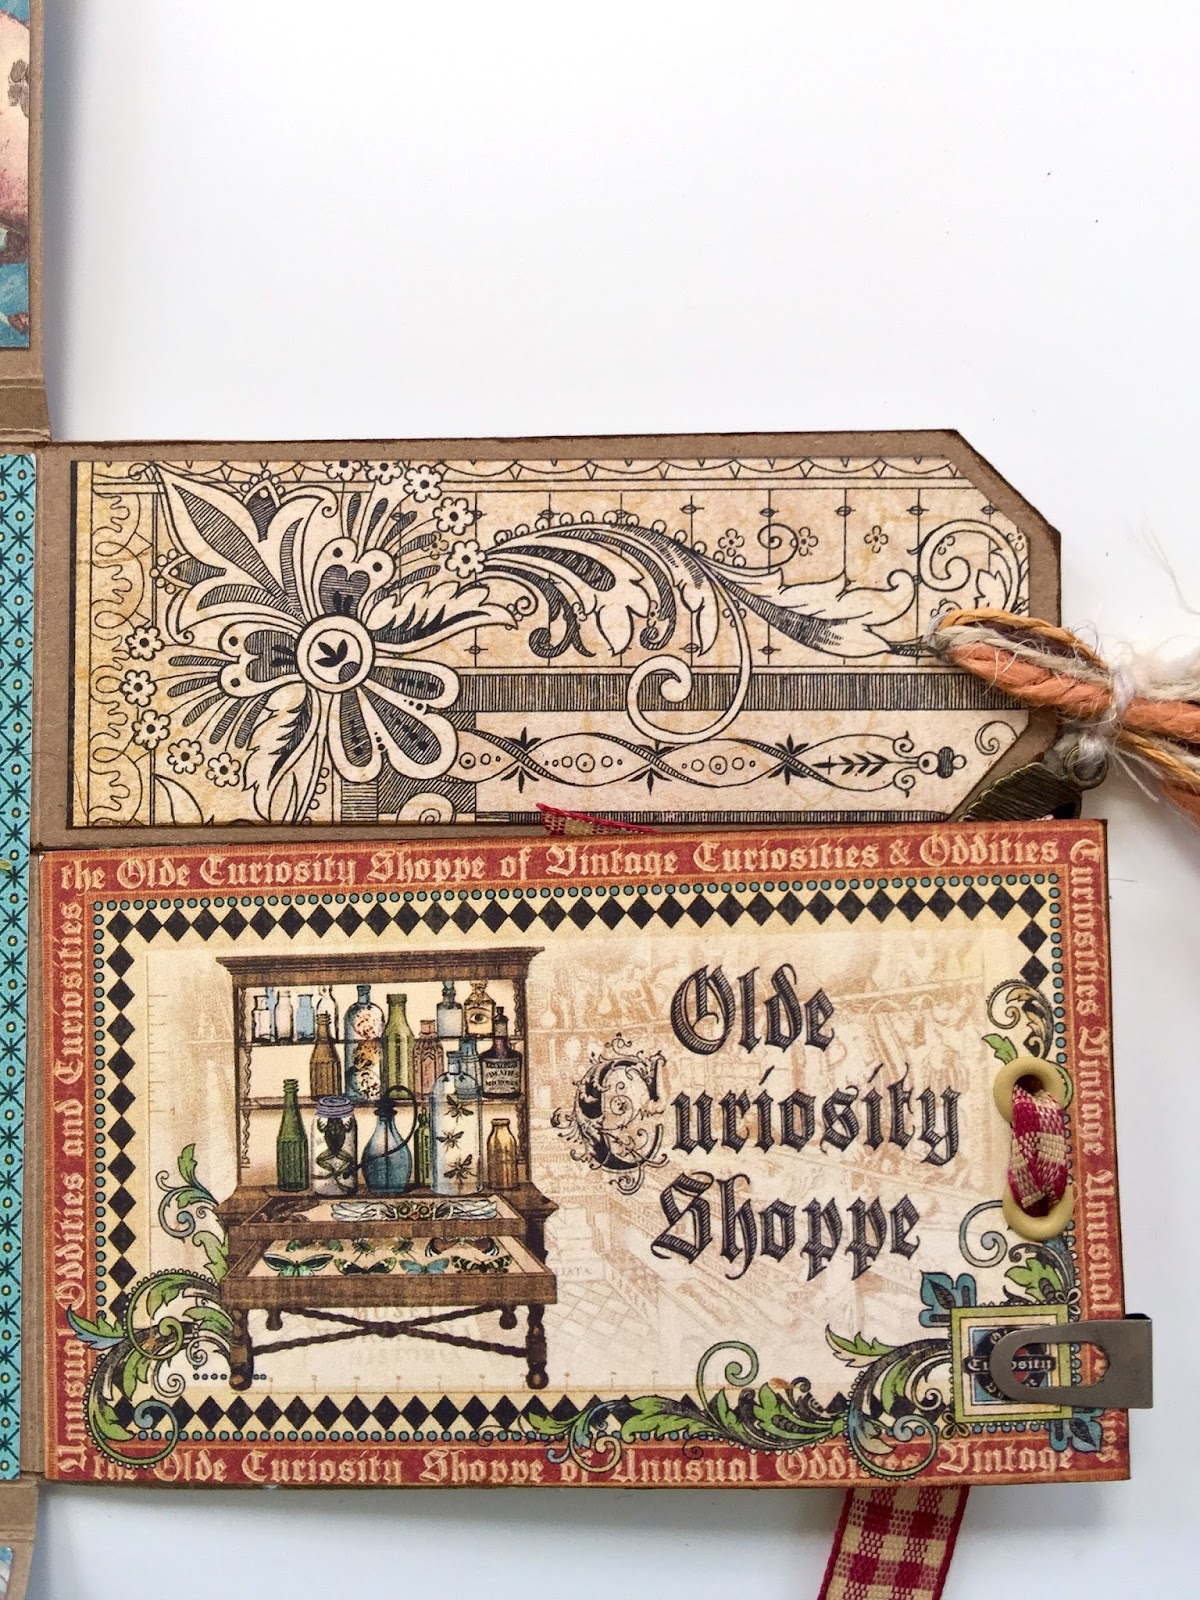 Olde Curiosity Shoppe Flip Flap Mini Album by Marina Blaukitchen Product by Graphic 45 photo 16.jpg